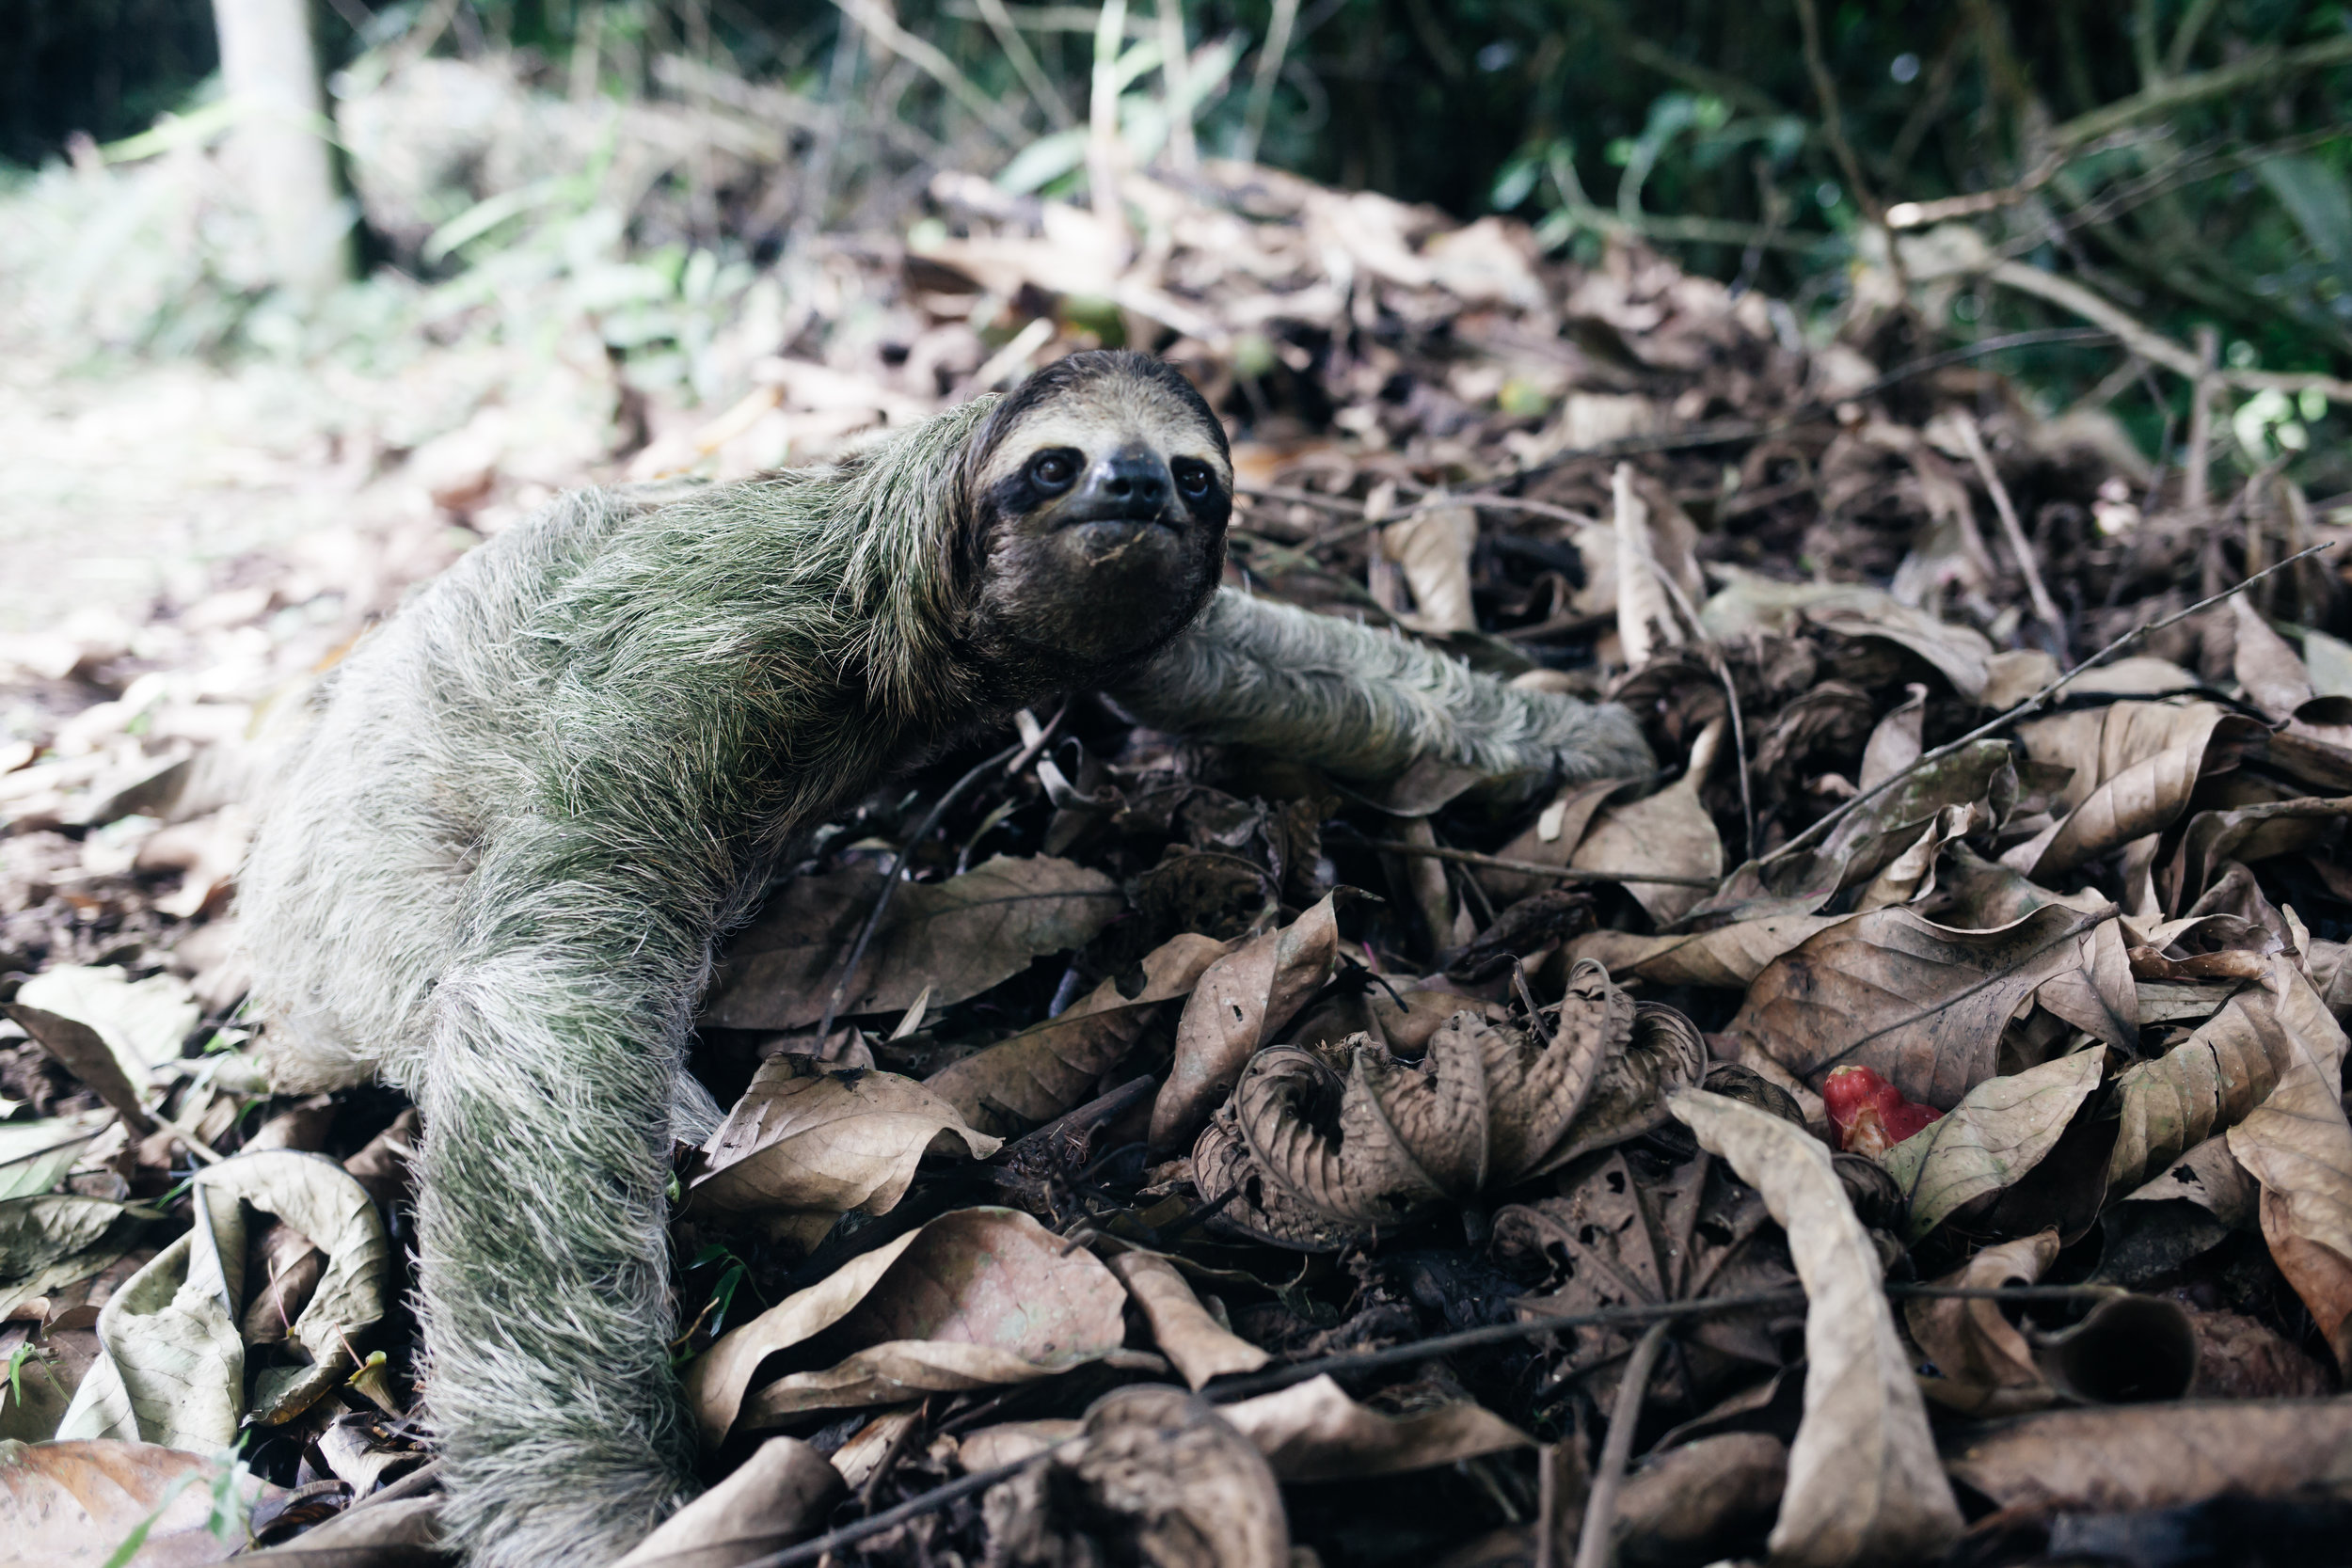 costarica_airbnb_sloth (33 of 49).jpg